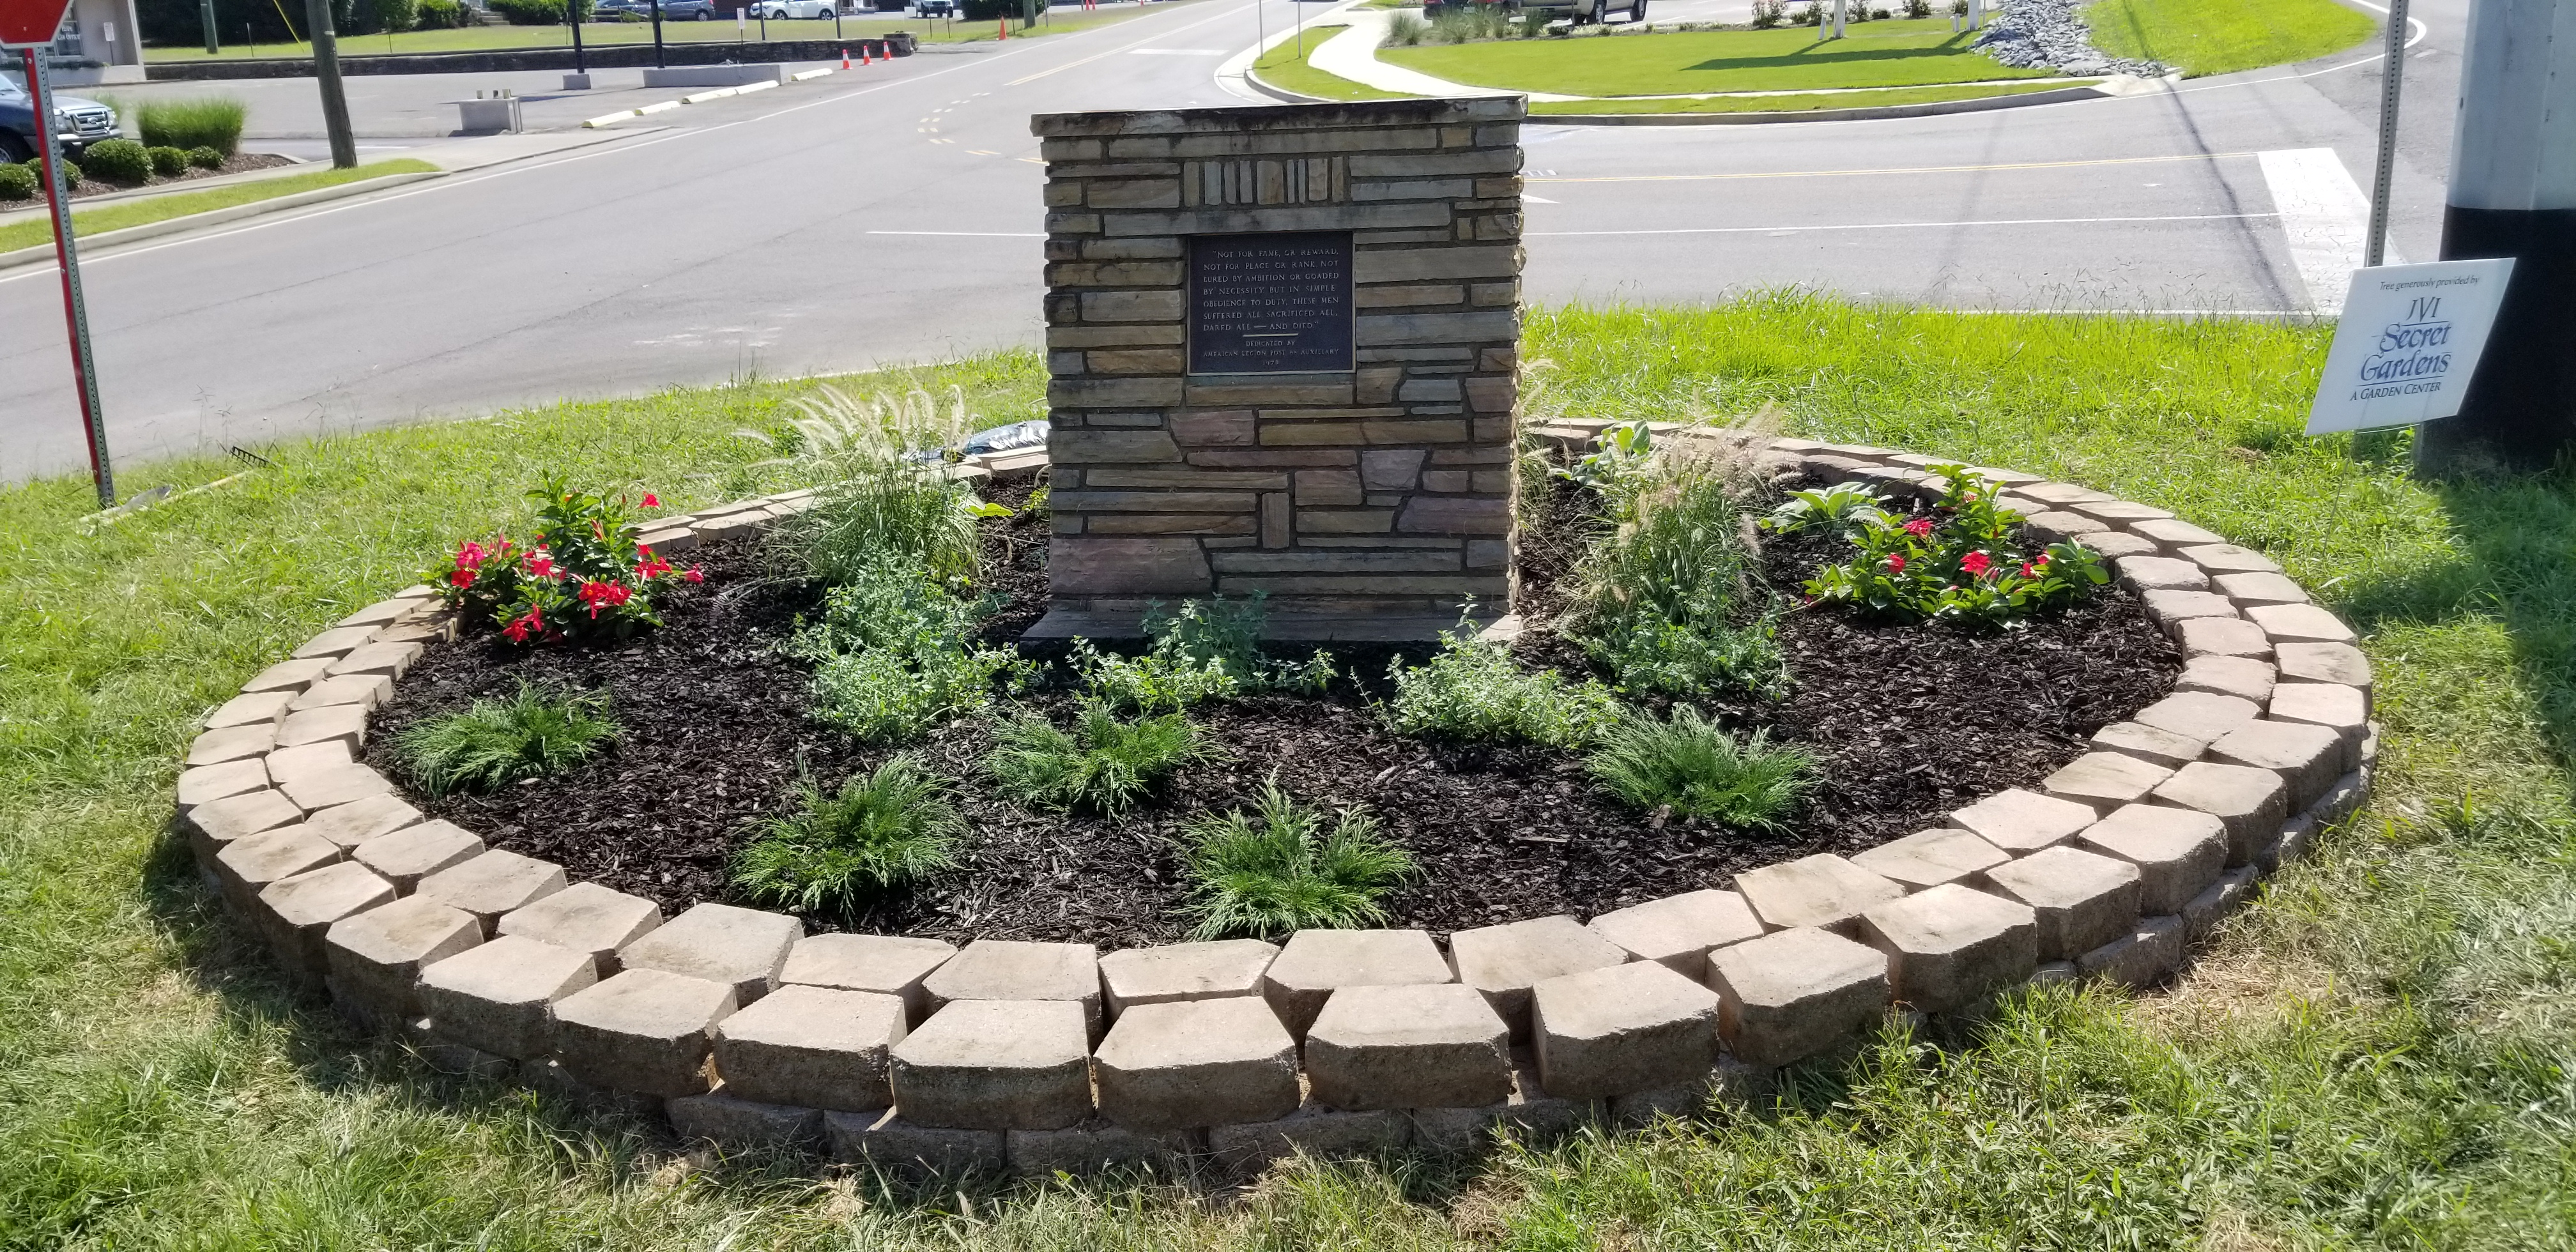 Post 88 Auxiliary Veterans Memorial Landscaping